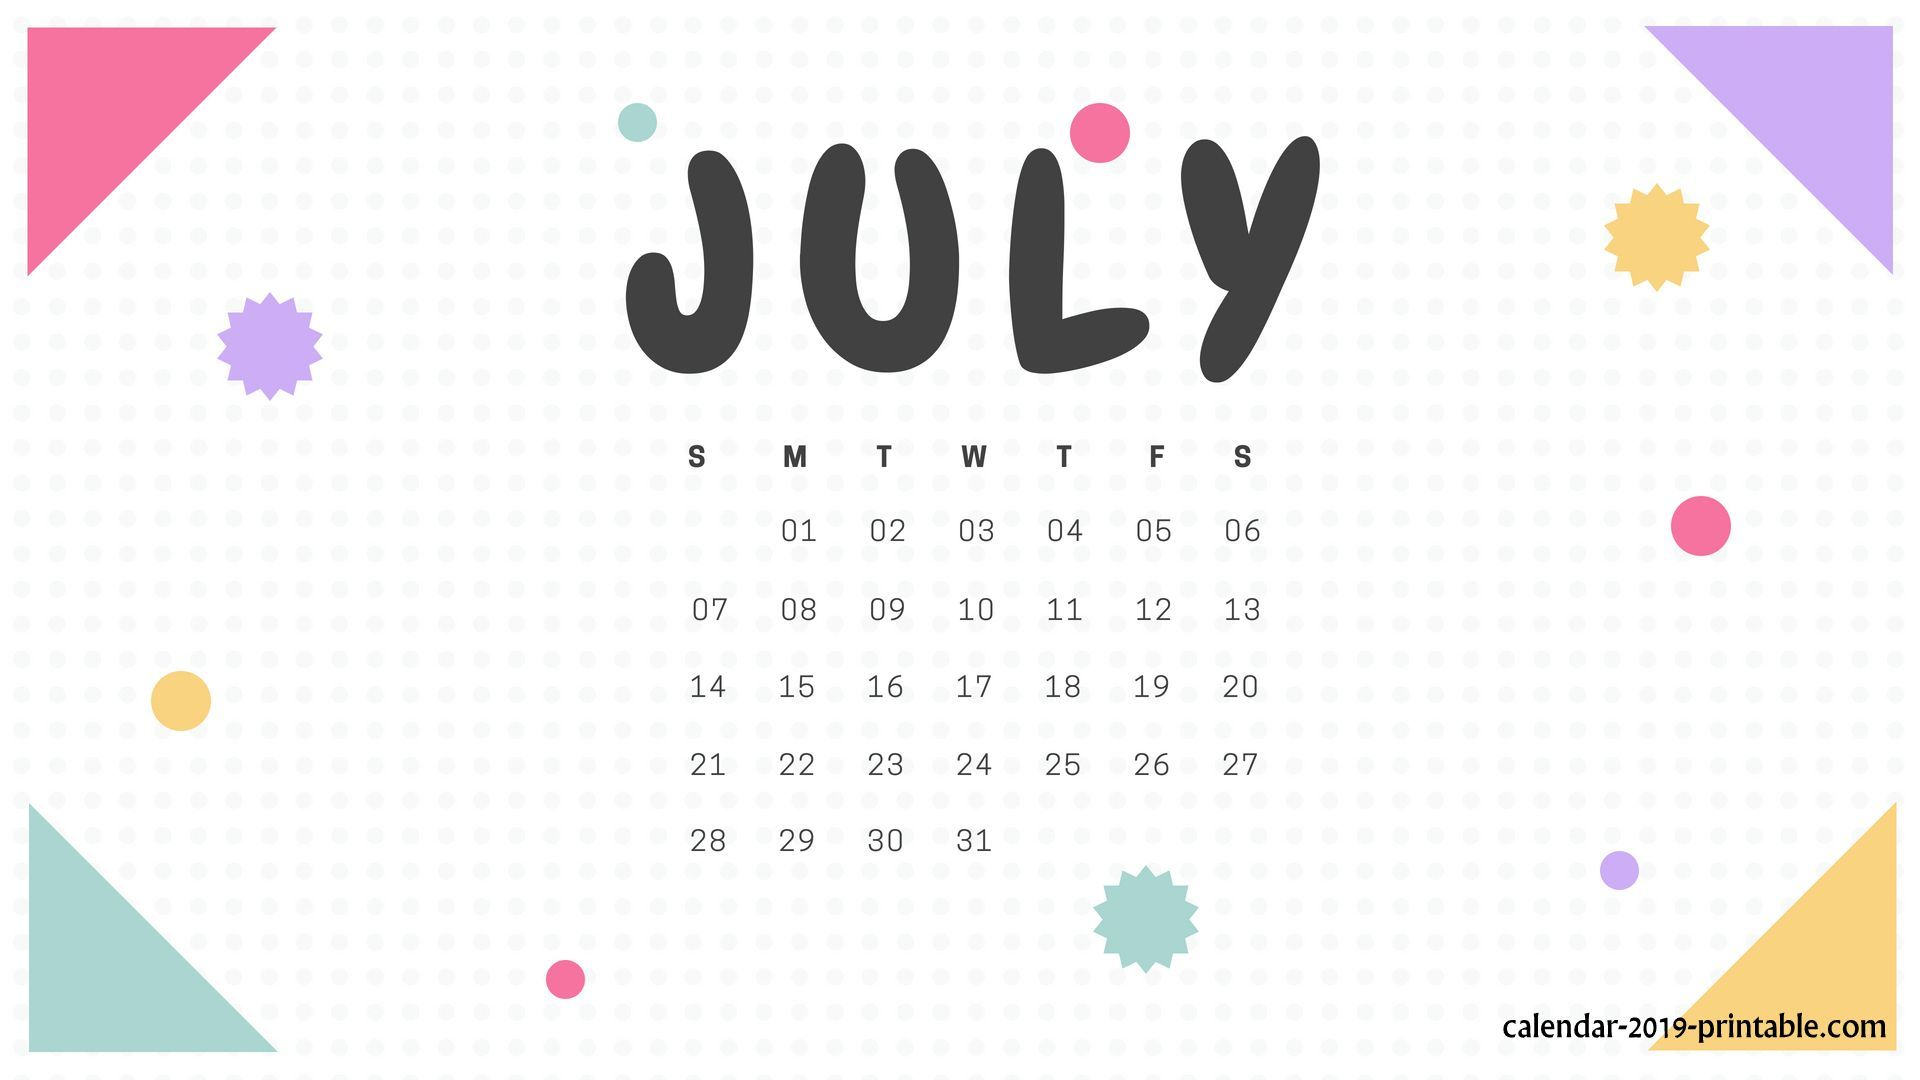 july 2019 calendar wallpaper Calendar 2019 Wallpapers Calendar 1920x1080